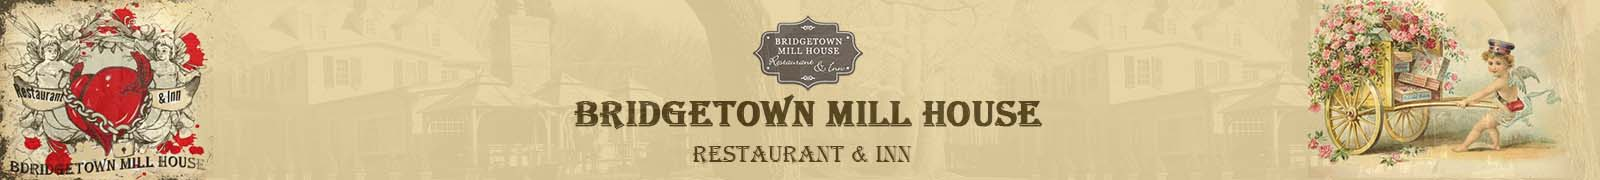 Bridgetown Mill House